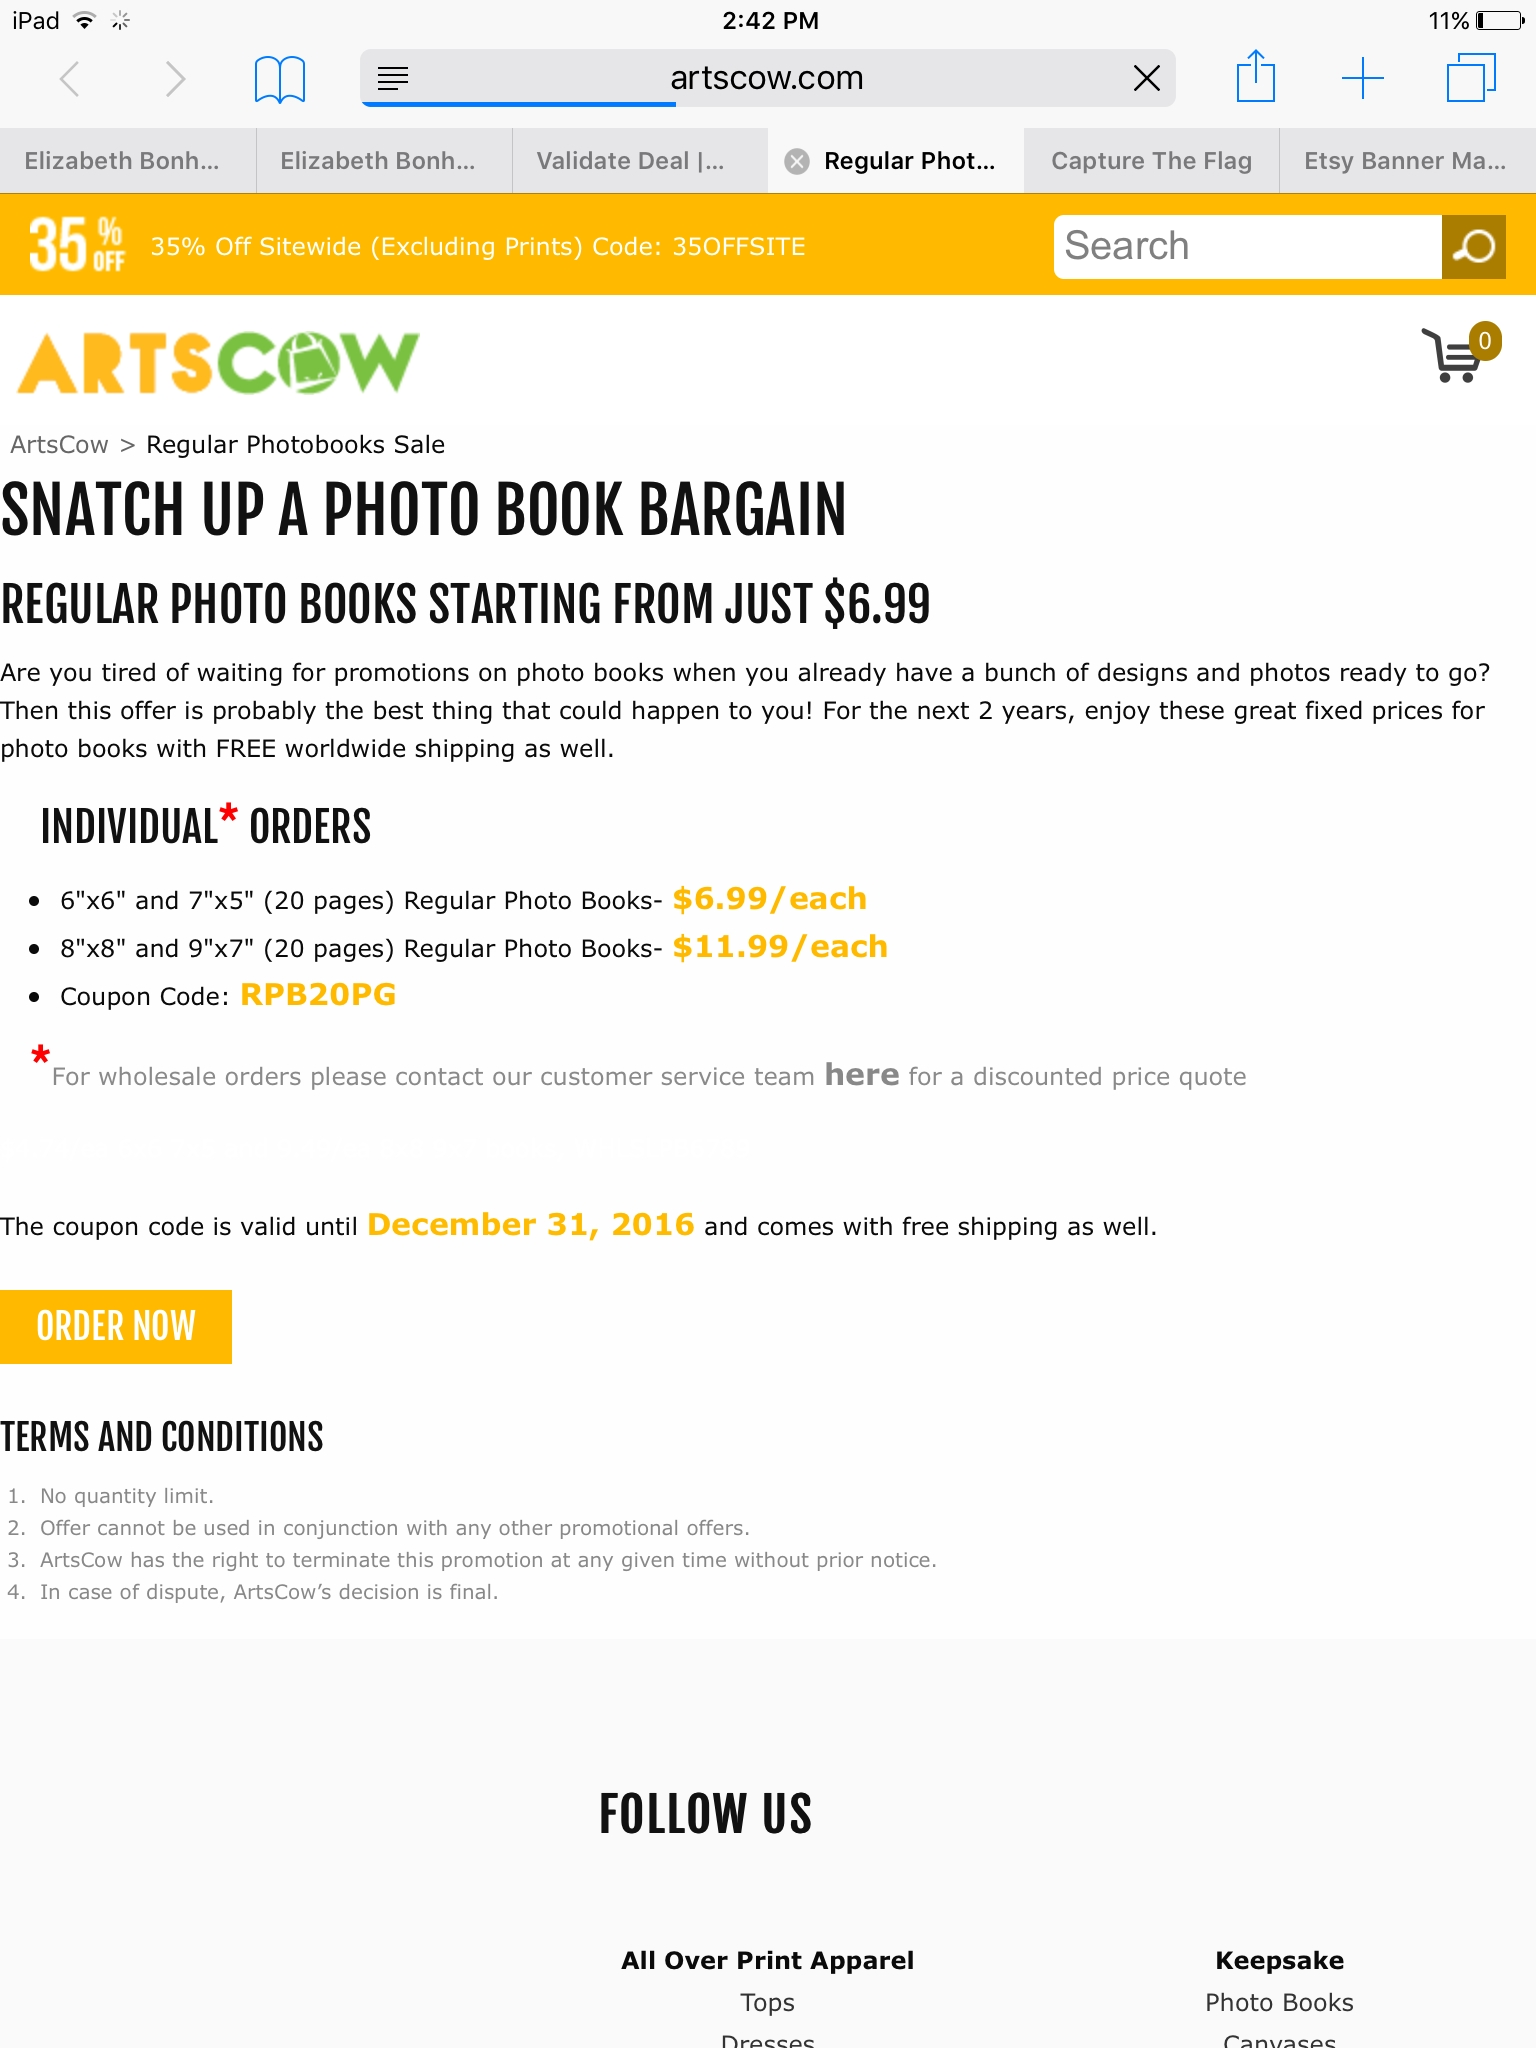 Artscow discount coupons